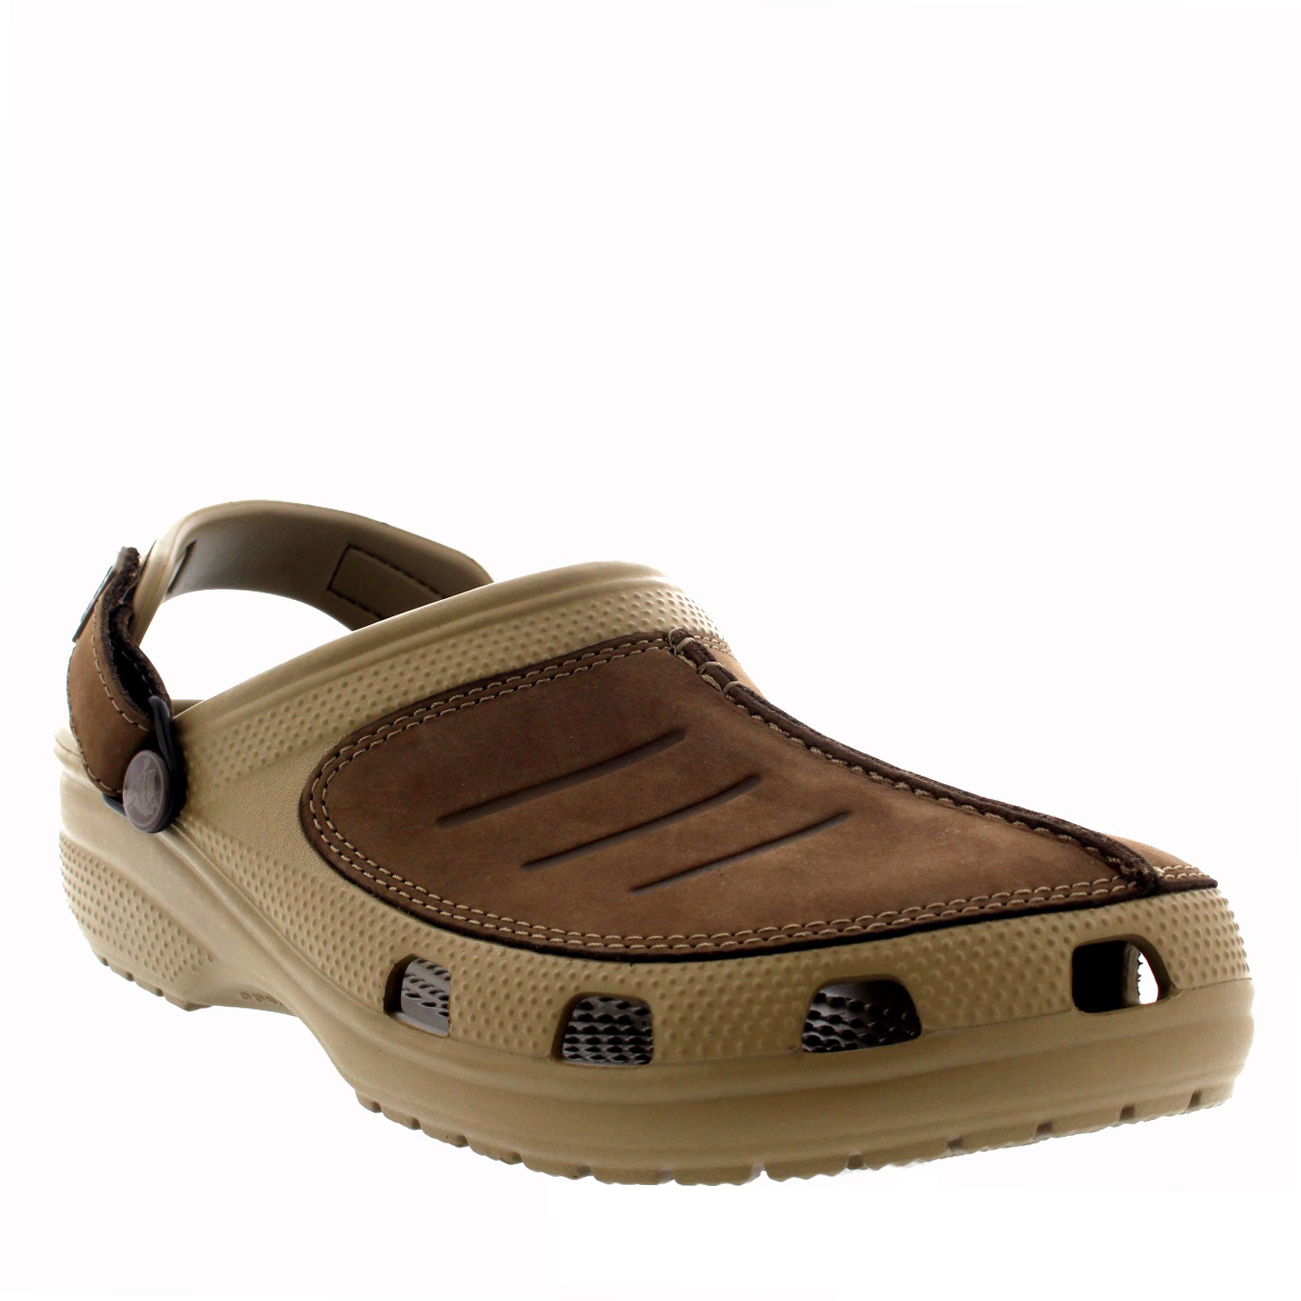 Jul 3, Get comfy with our ergonomic Crocs™ Classic clog. Durable, lightweight, and Hfriendly for beach, boat, or pool. Free shipping on qualifying orders. Great customer service. Order today.